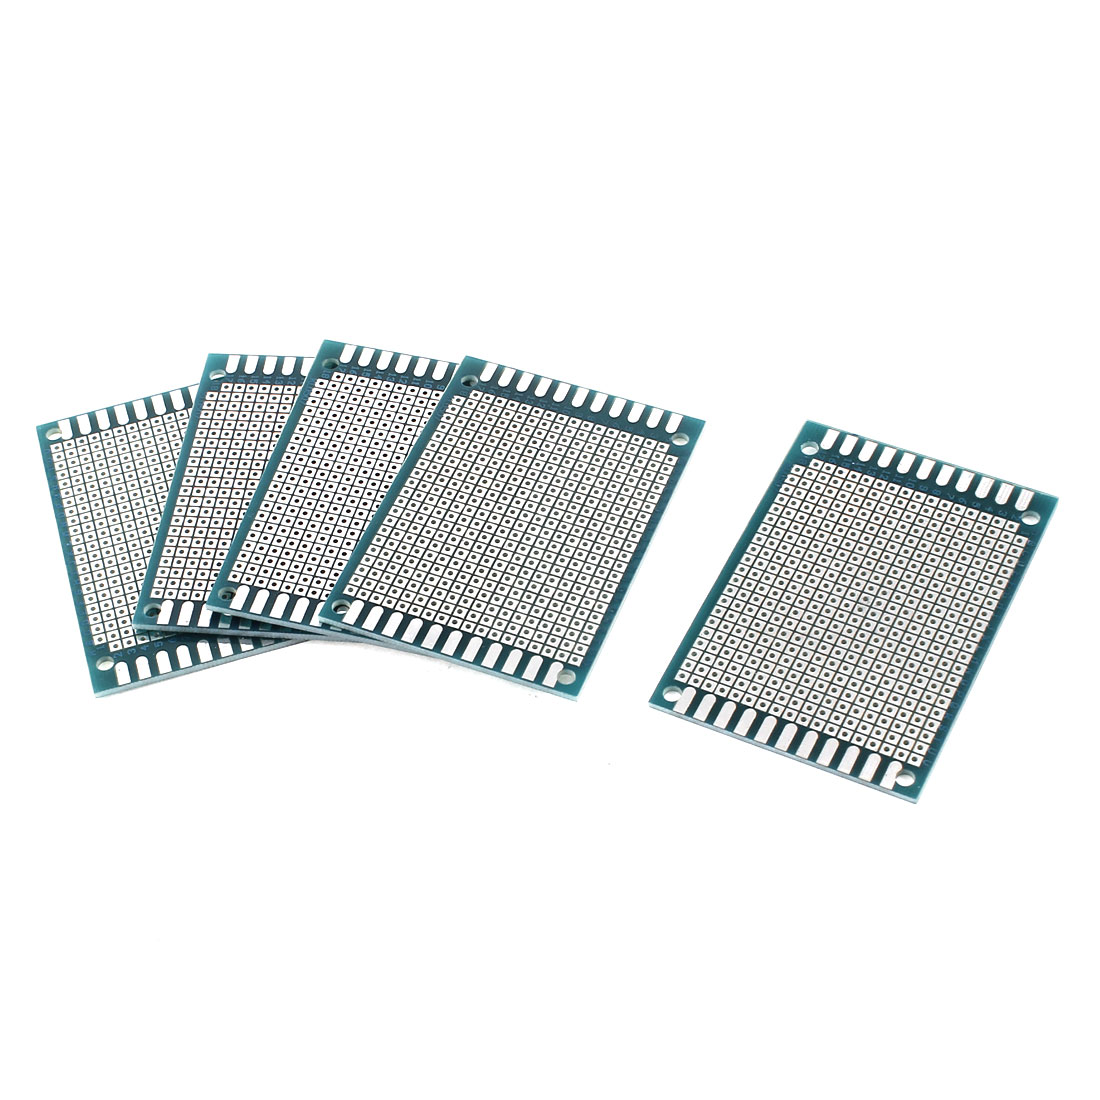 7cm x 5cm Single Side Tinned Universal Prototype PCB Circuit Board Teal 5pcs